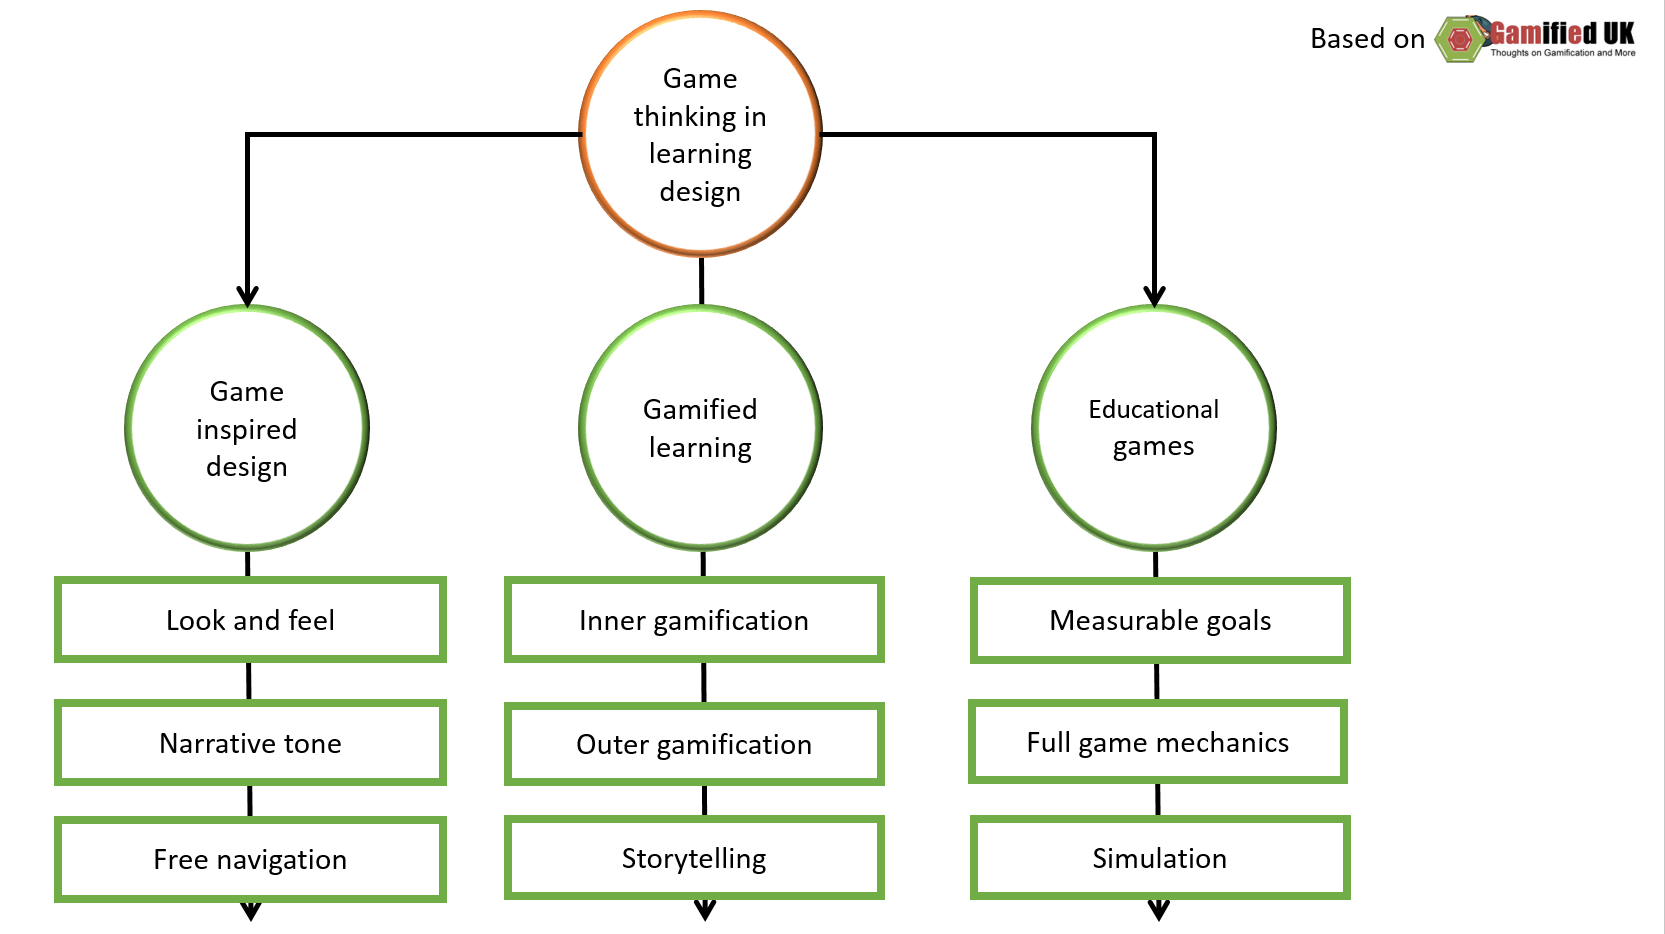 gamiefiactionin_learning